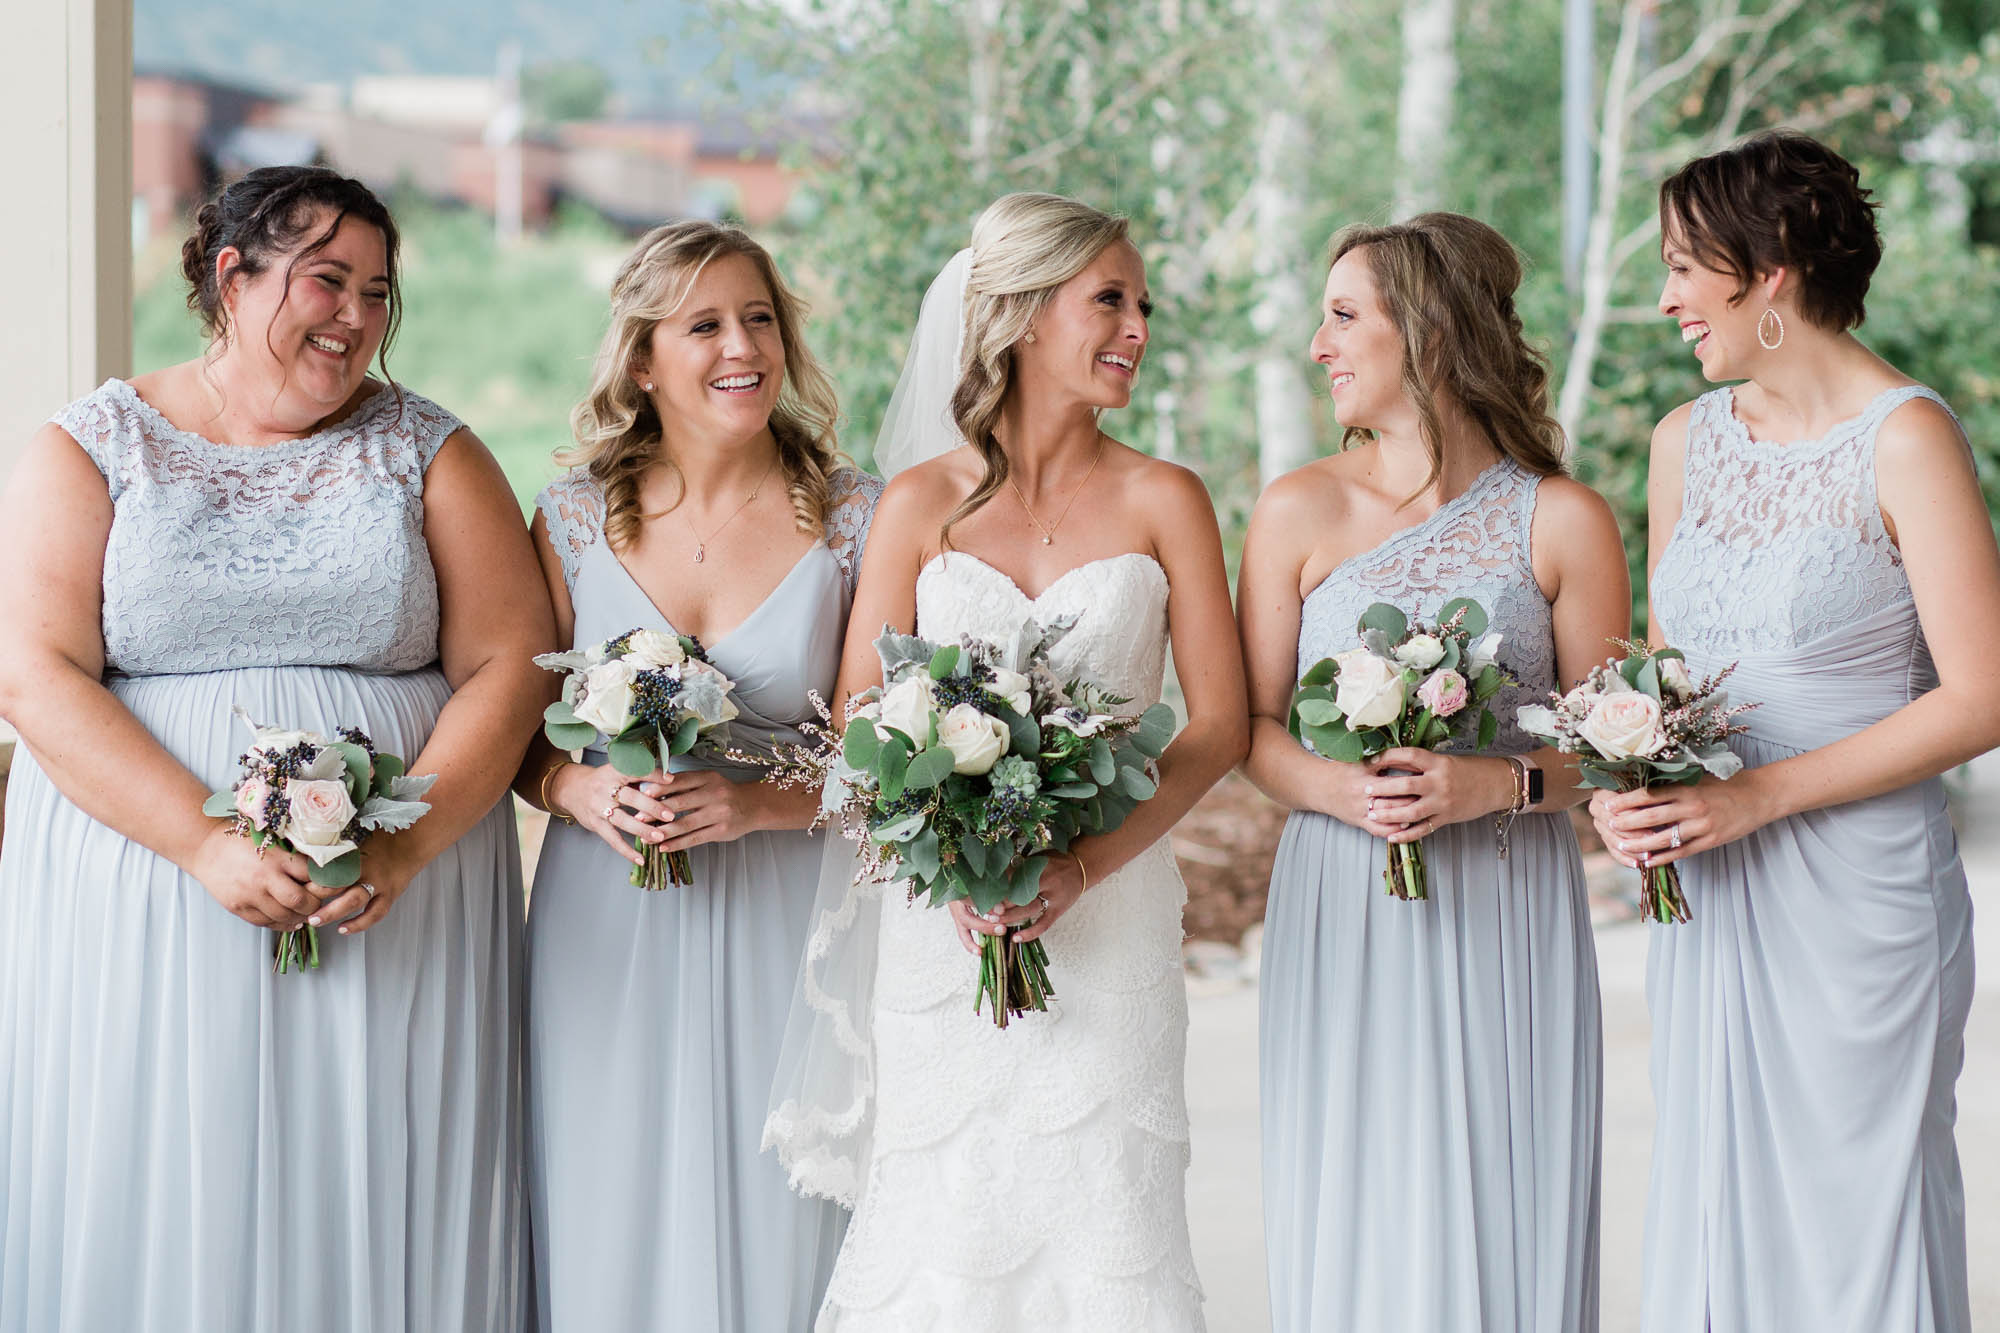 South Valley Park Bridesmaids Crew Photography